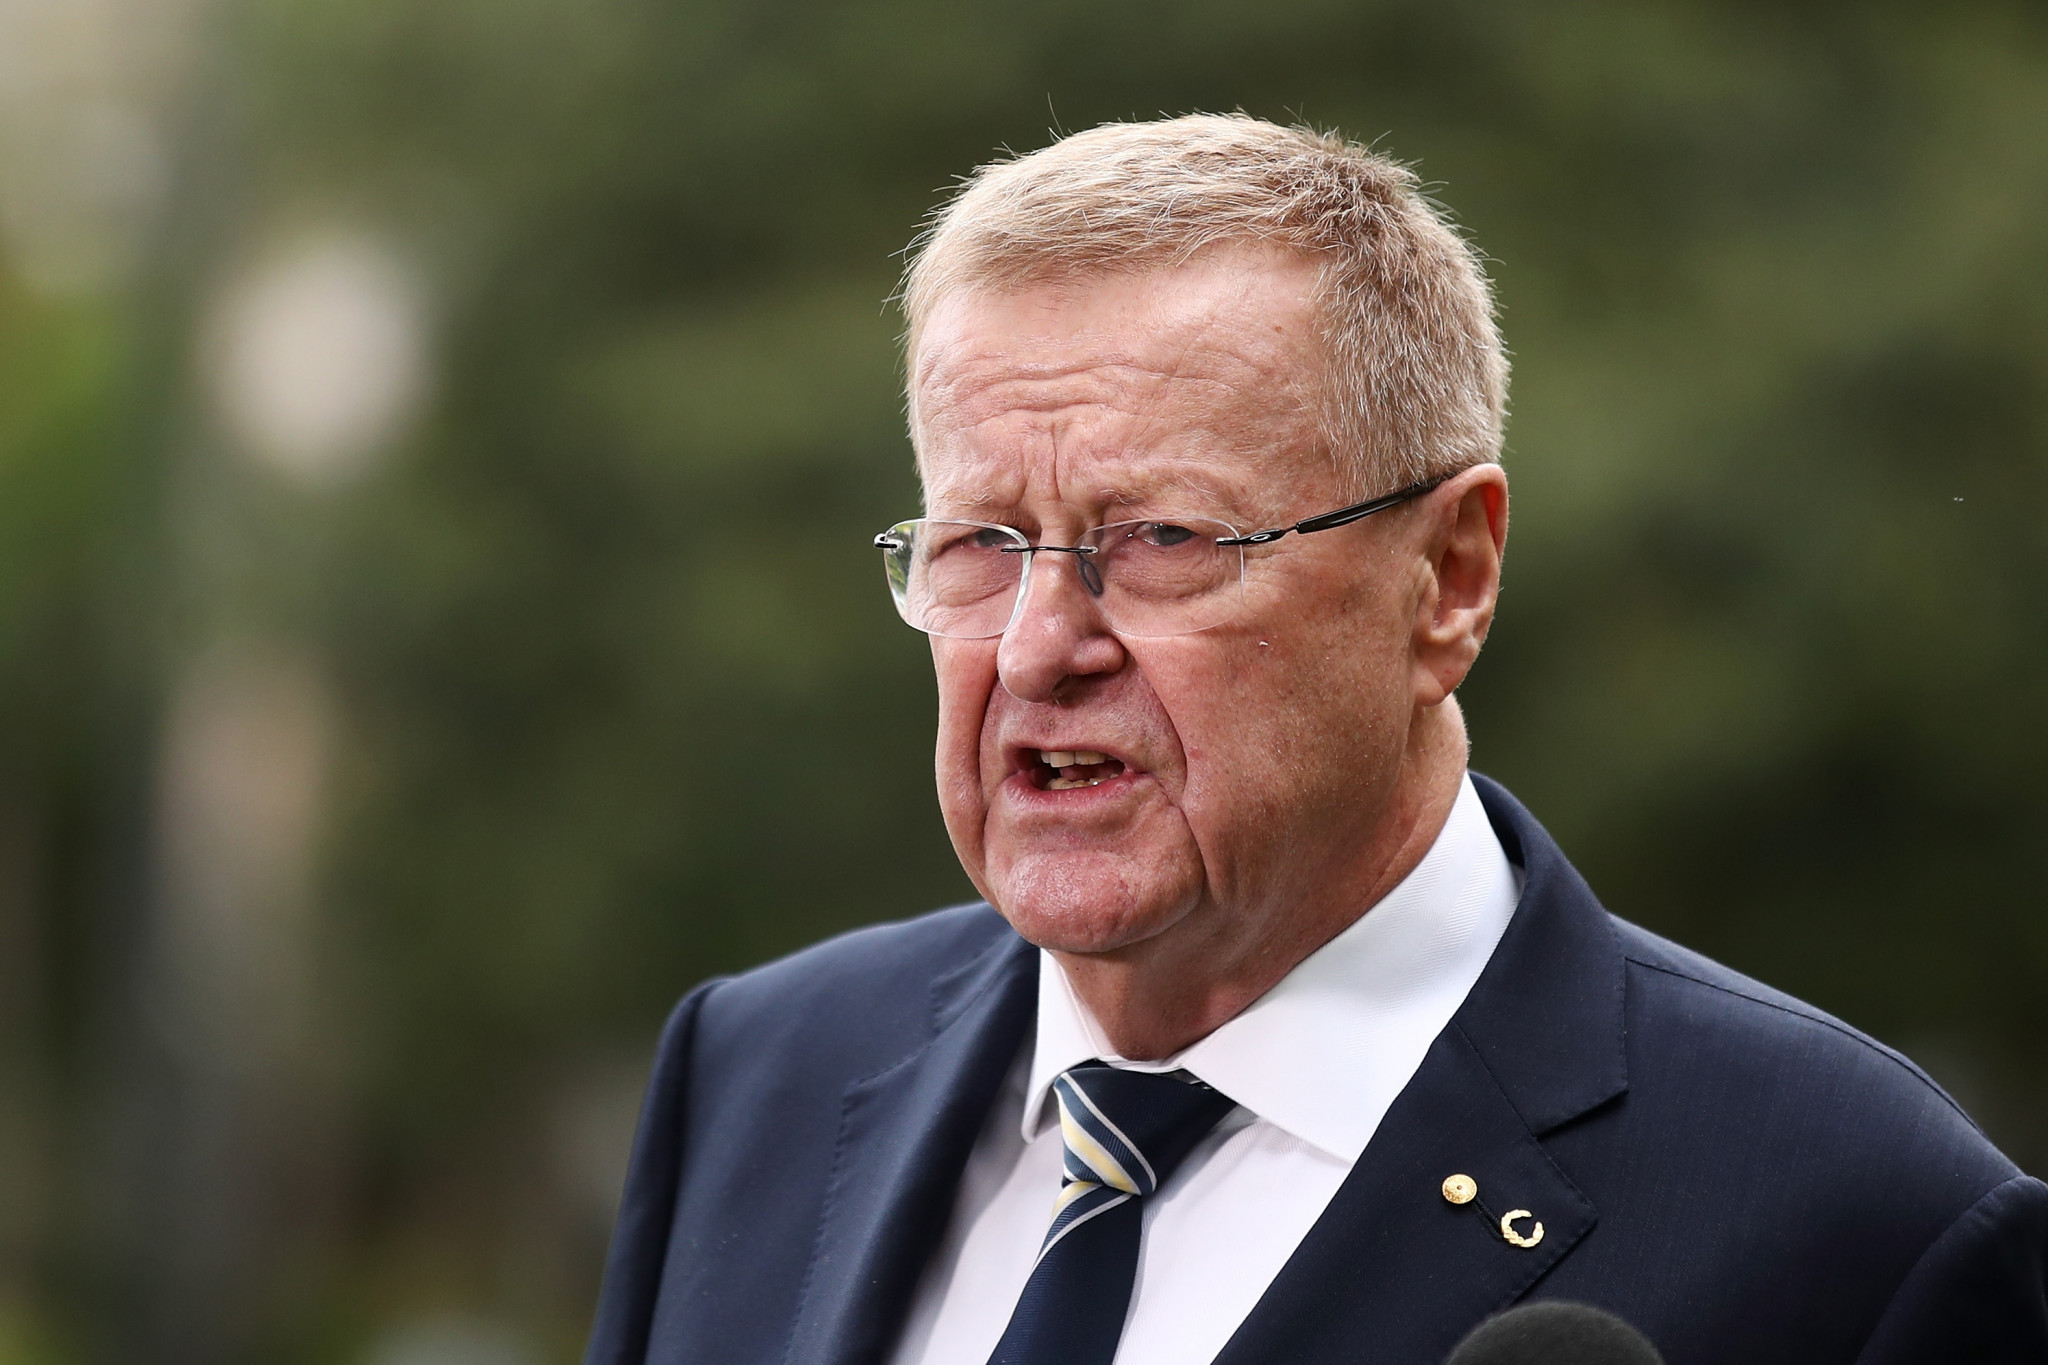 IOC vice-president and Tokyo 2020 Coordination Commission chair John Coates has appeared confident the Olympic and Paralympic Games will take place in the Japanese capital next year ©Getty Images